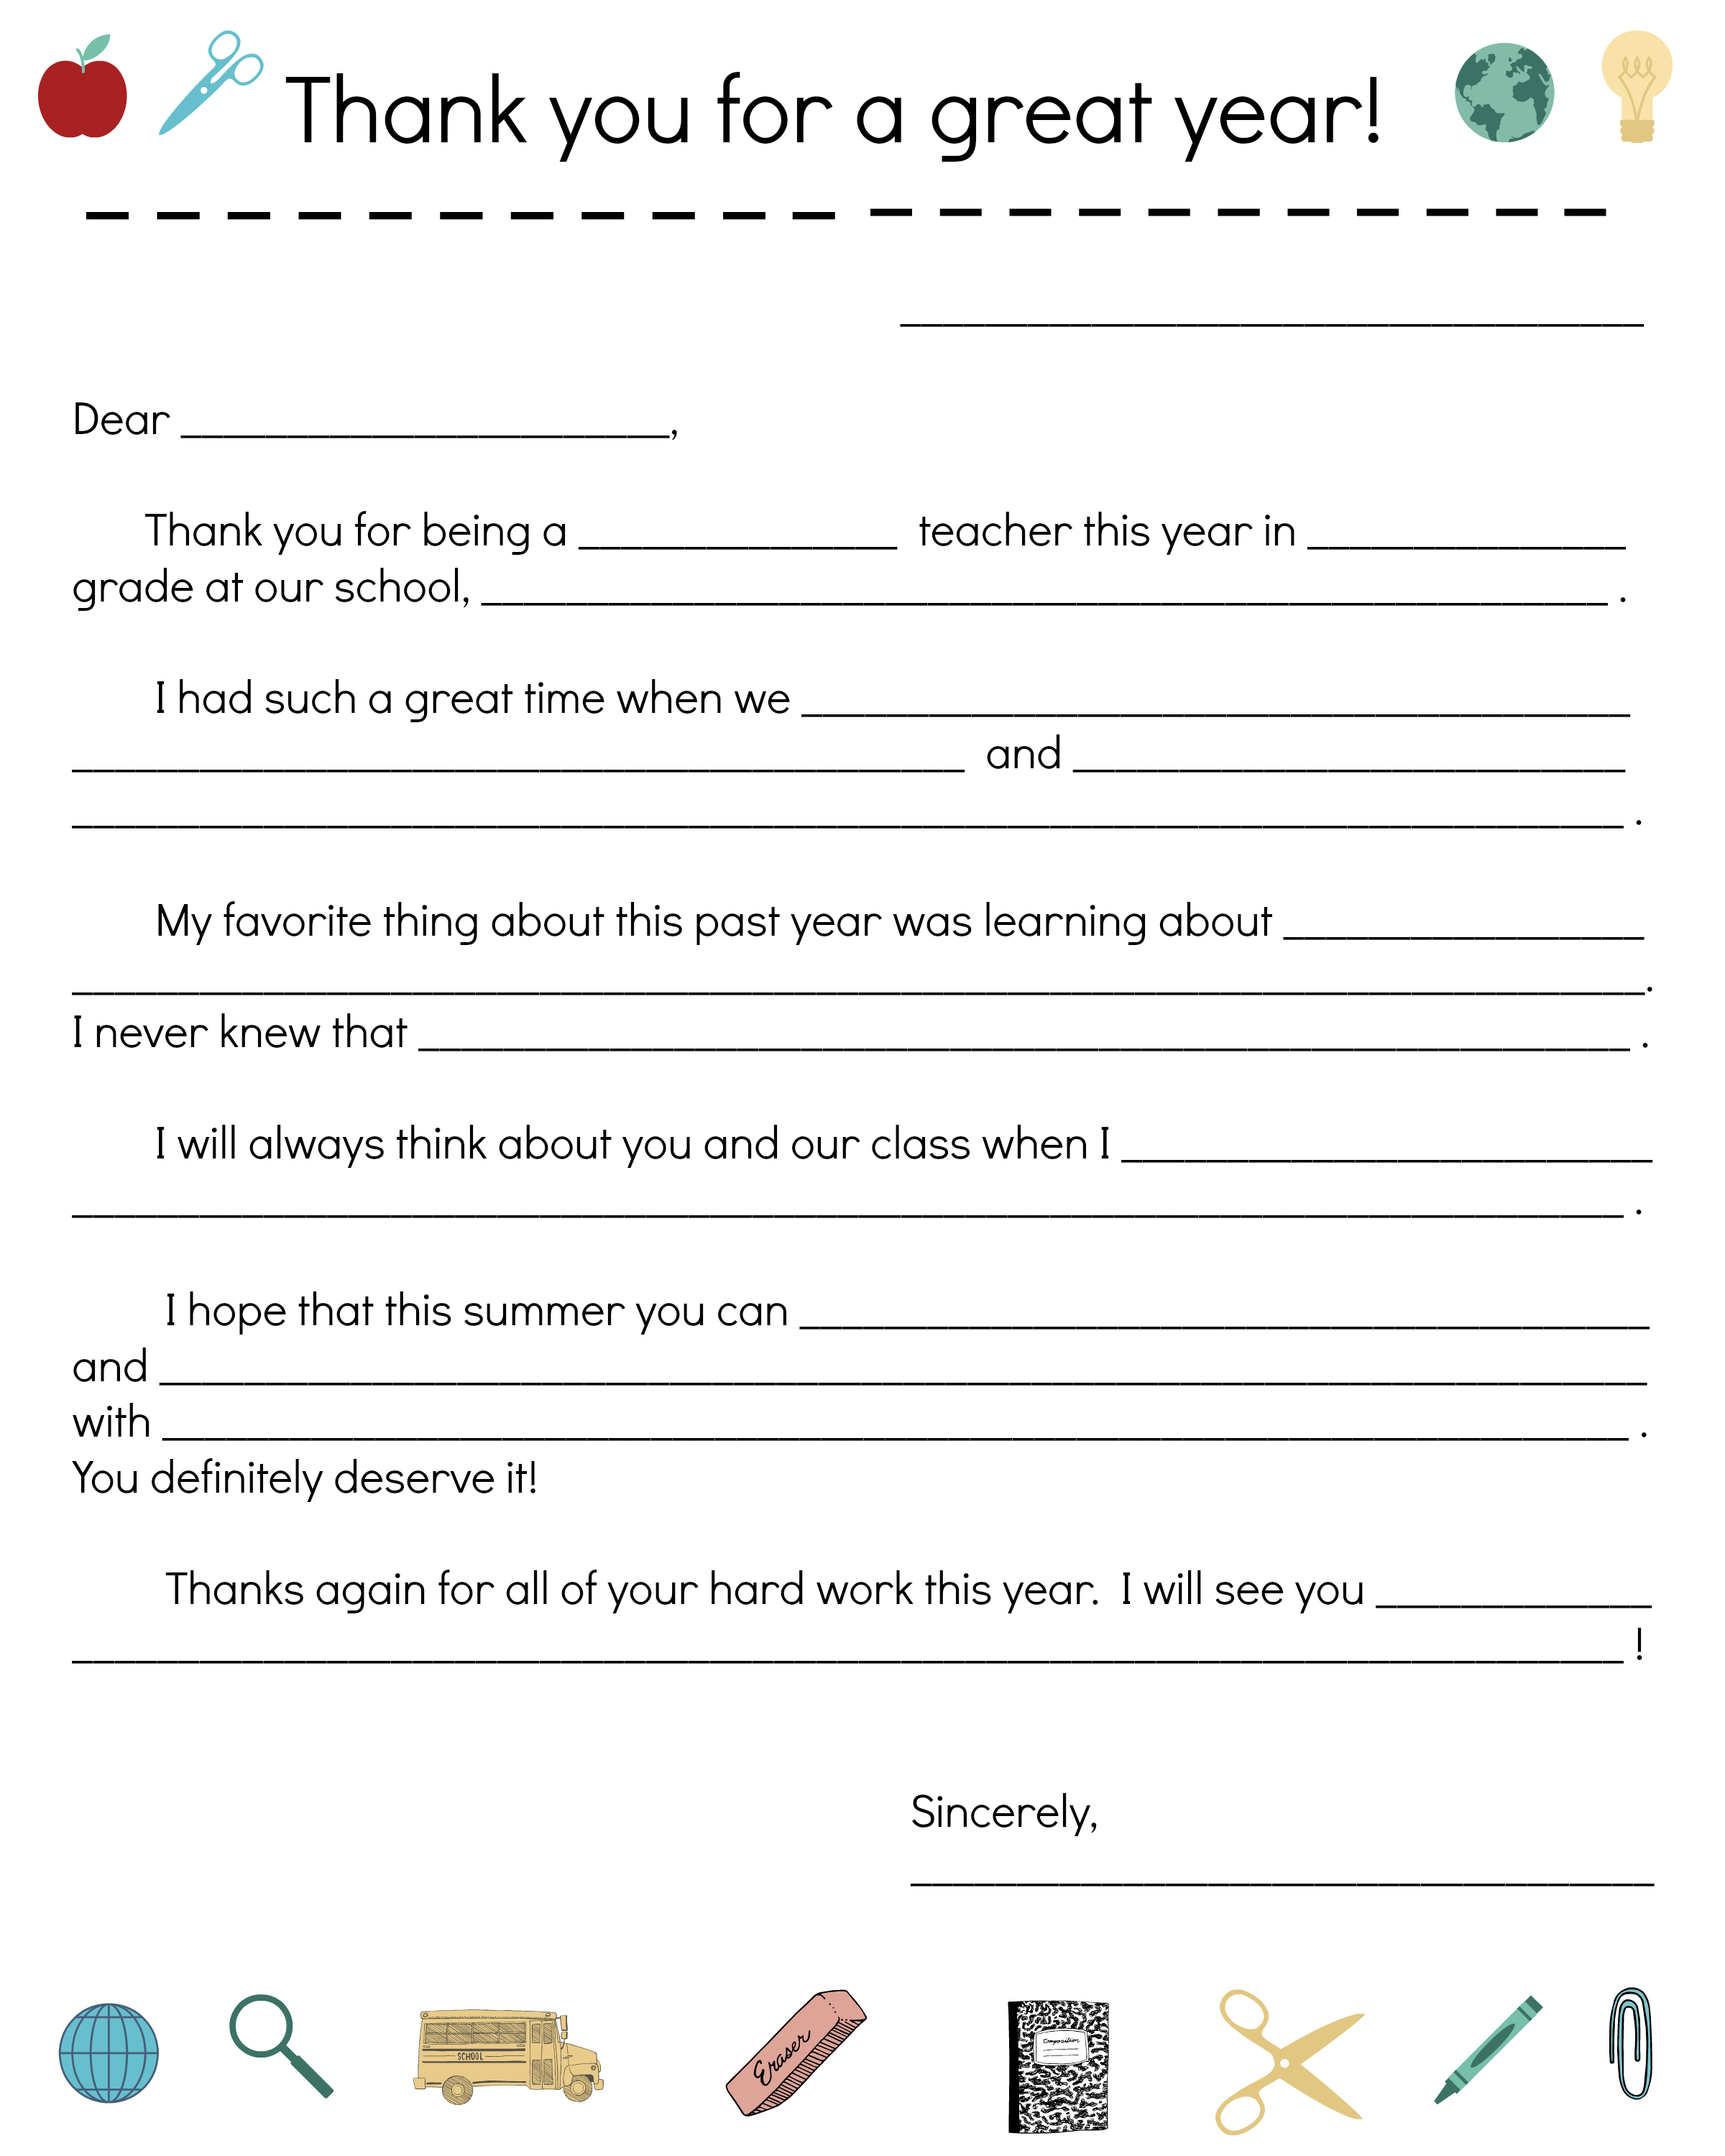 Say Thanks To Teachers With A Fill-In Note From Your Child with Teacher Printable Templates